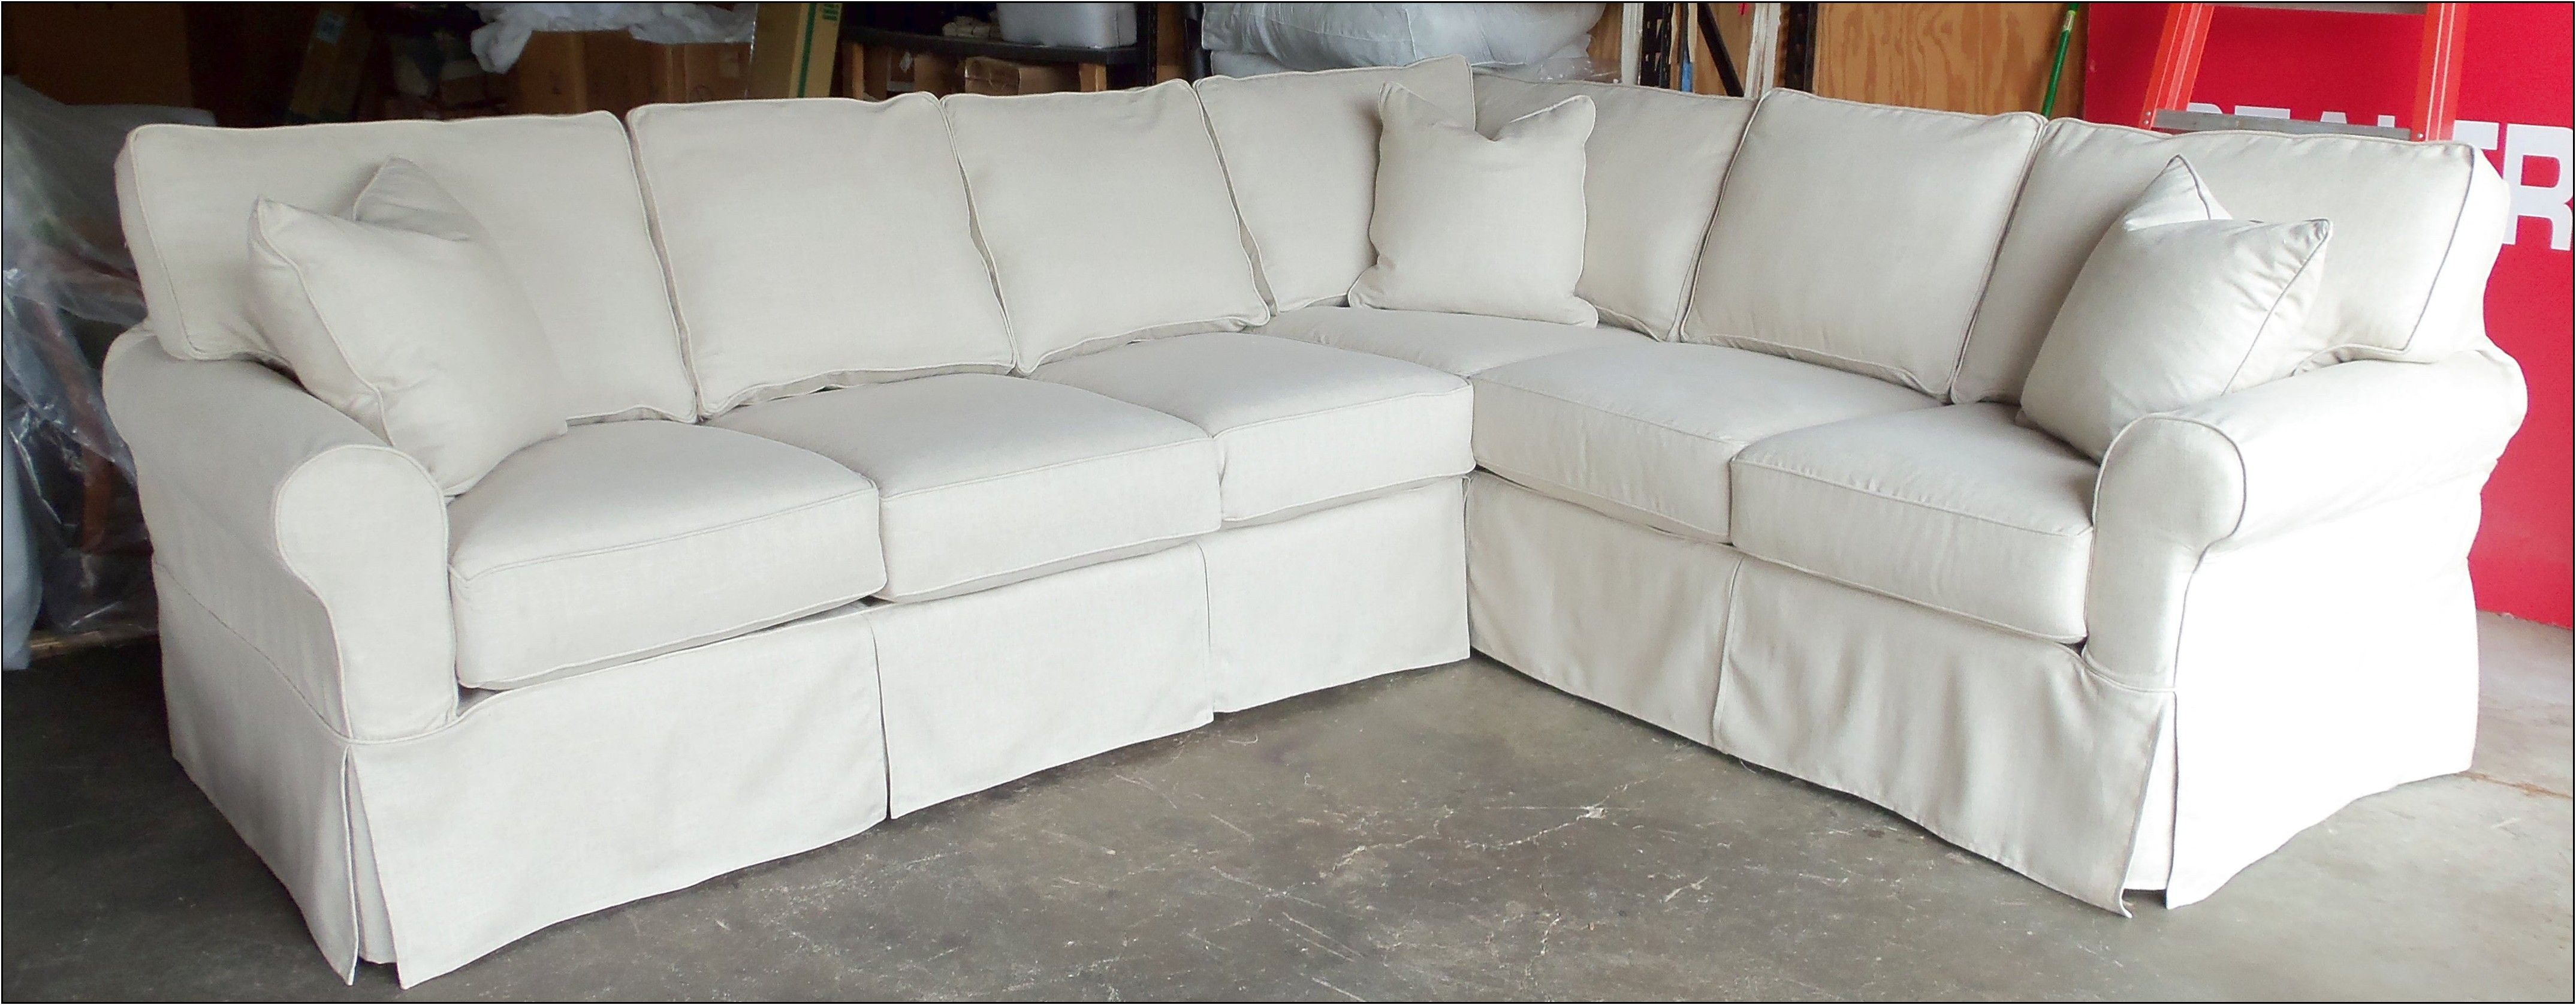 full couch sectional mini distressed sofas small size and loveseat of apartment leather sofa large